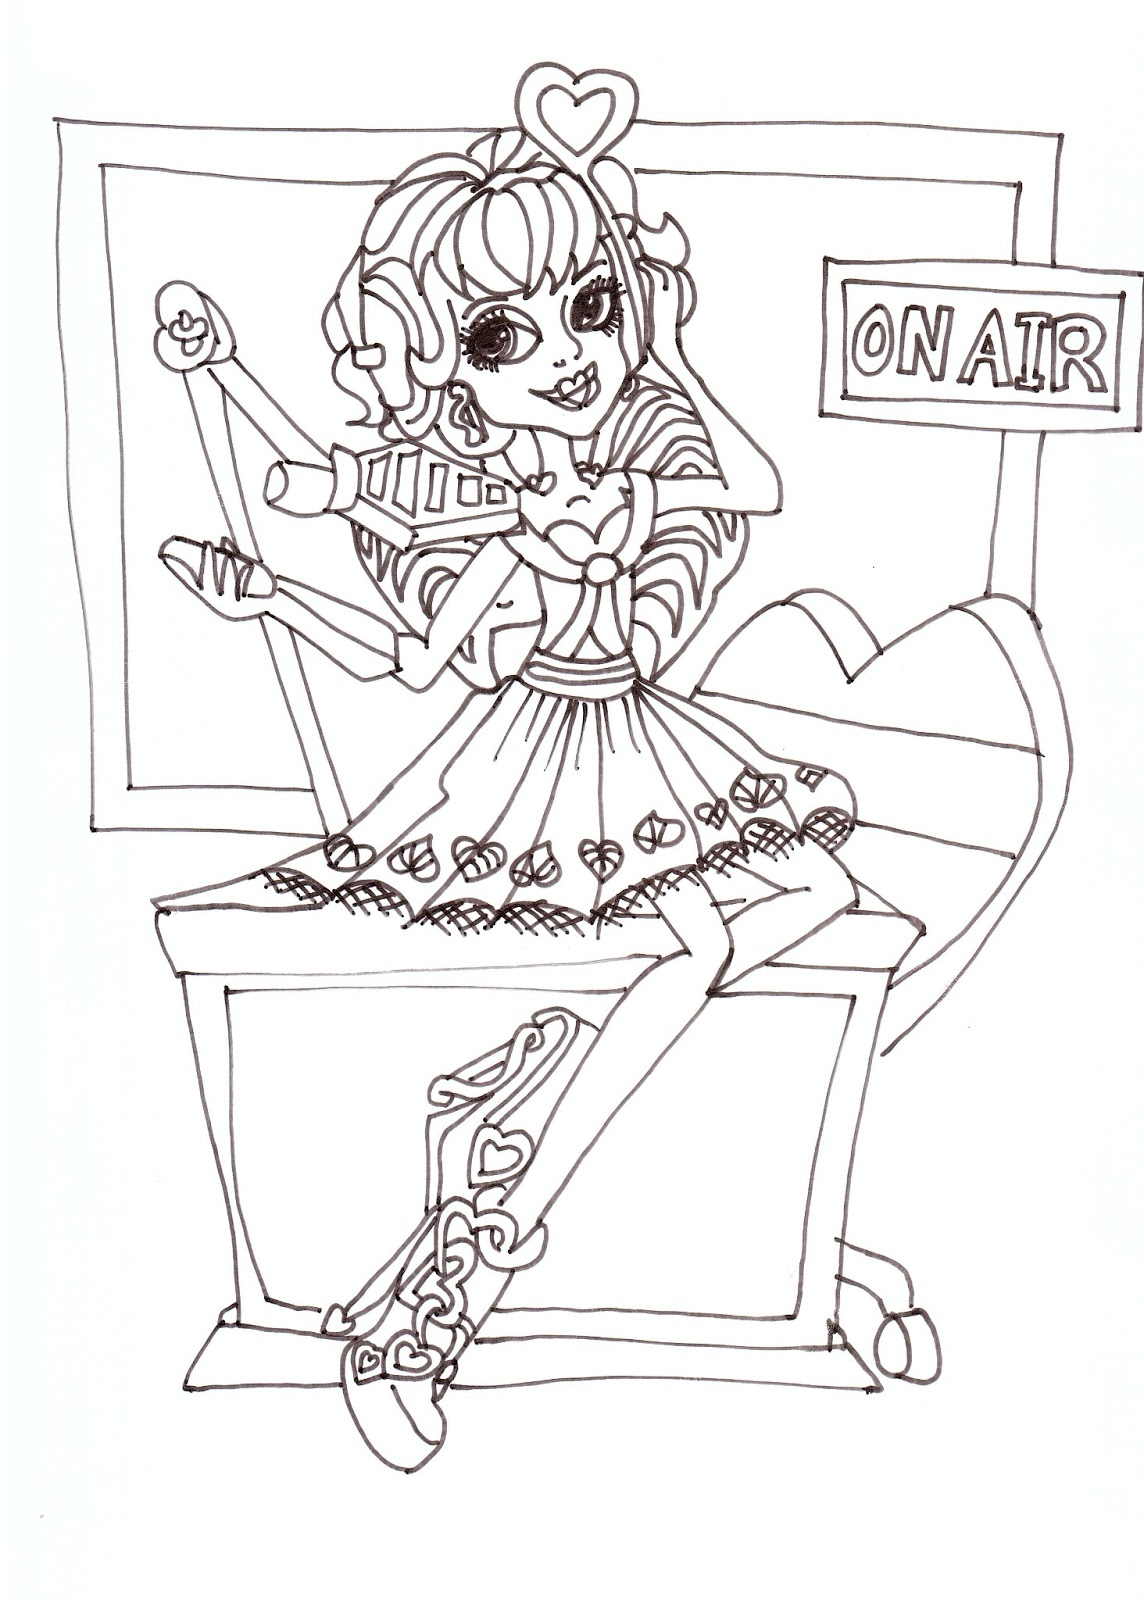 CLICK HERE TO PRINT Free Printable Monster High CA Cupid Coloring Sheet